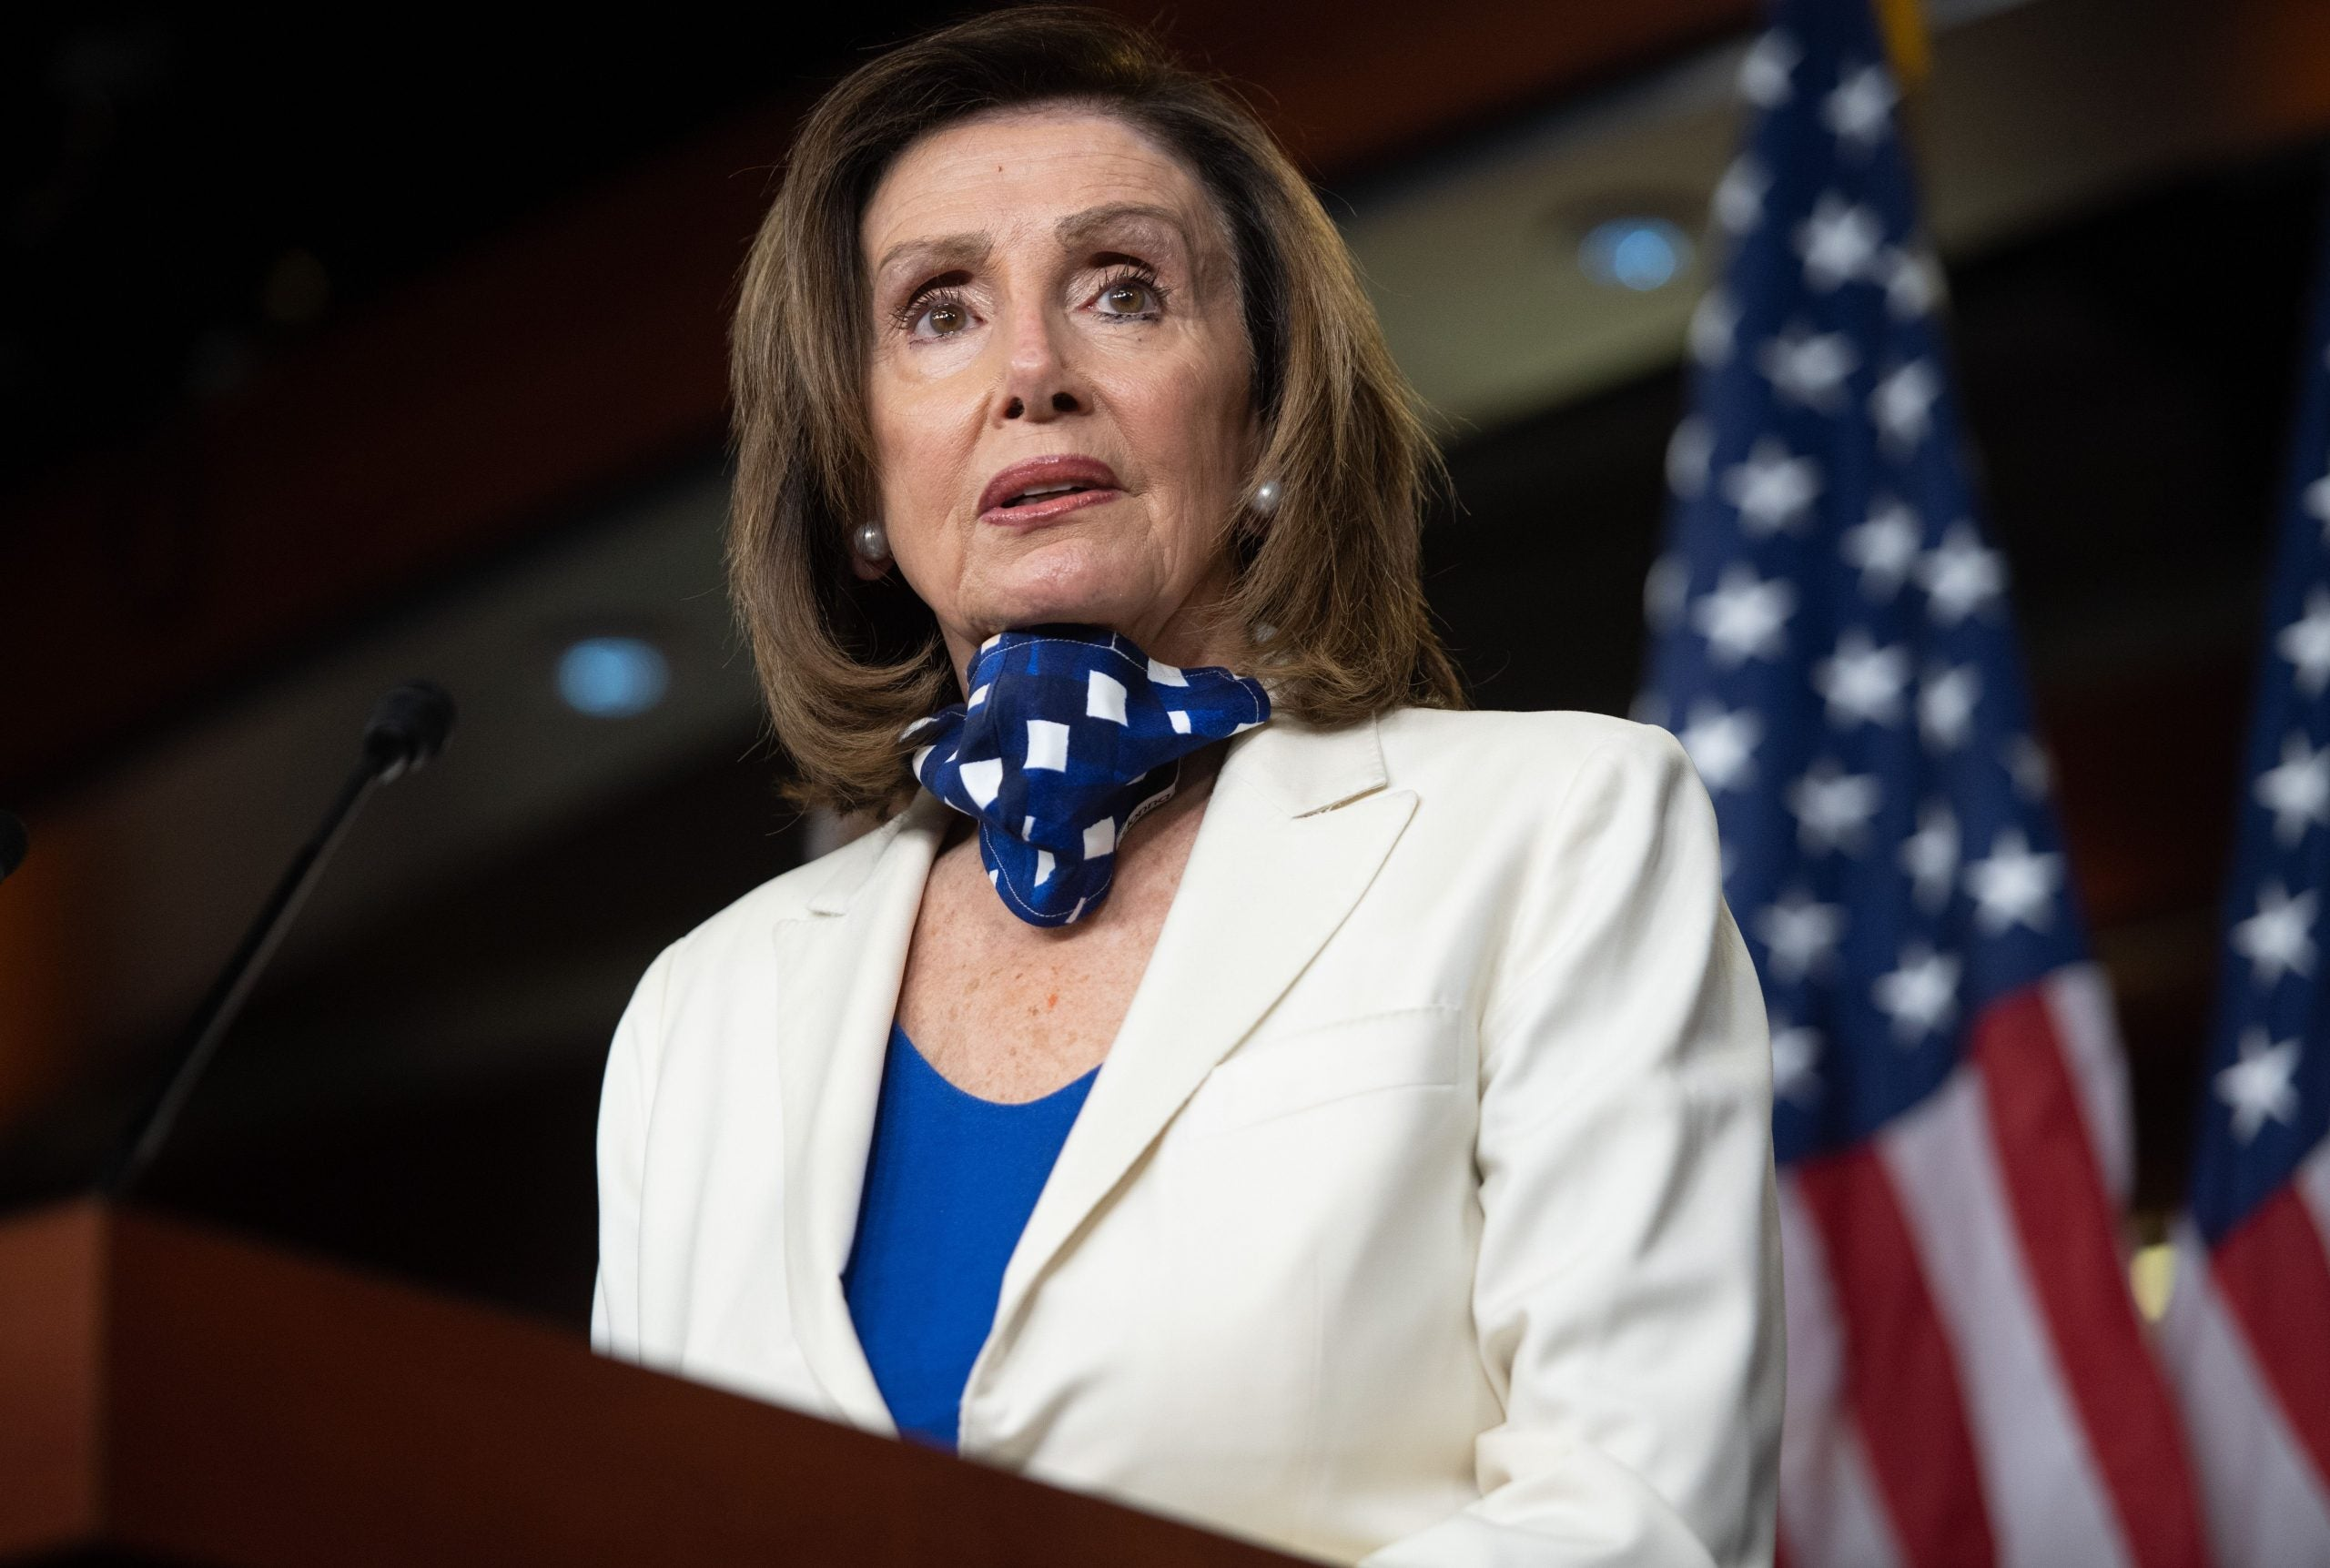 Nancy Pelosi, architect of HEROES Act